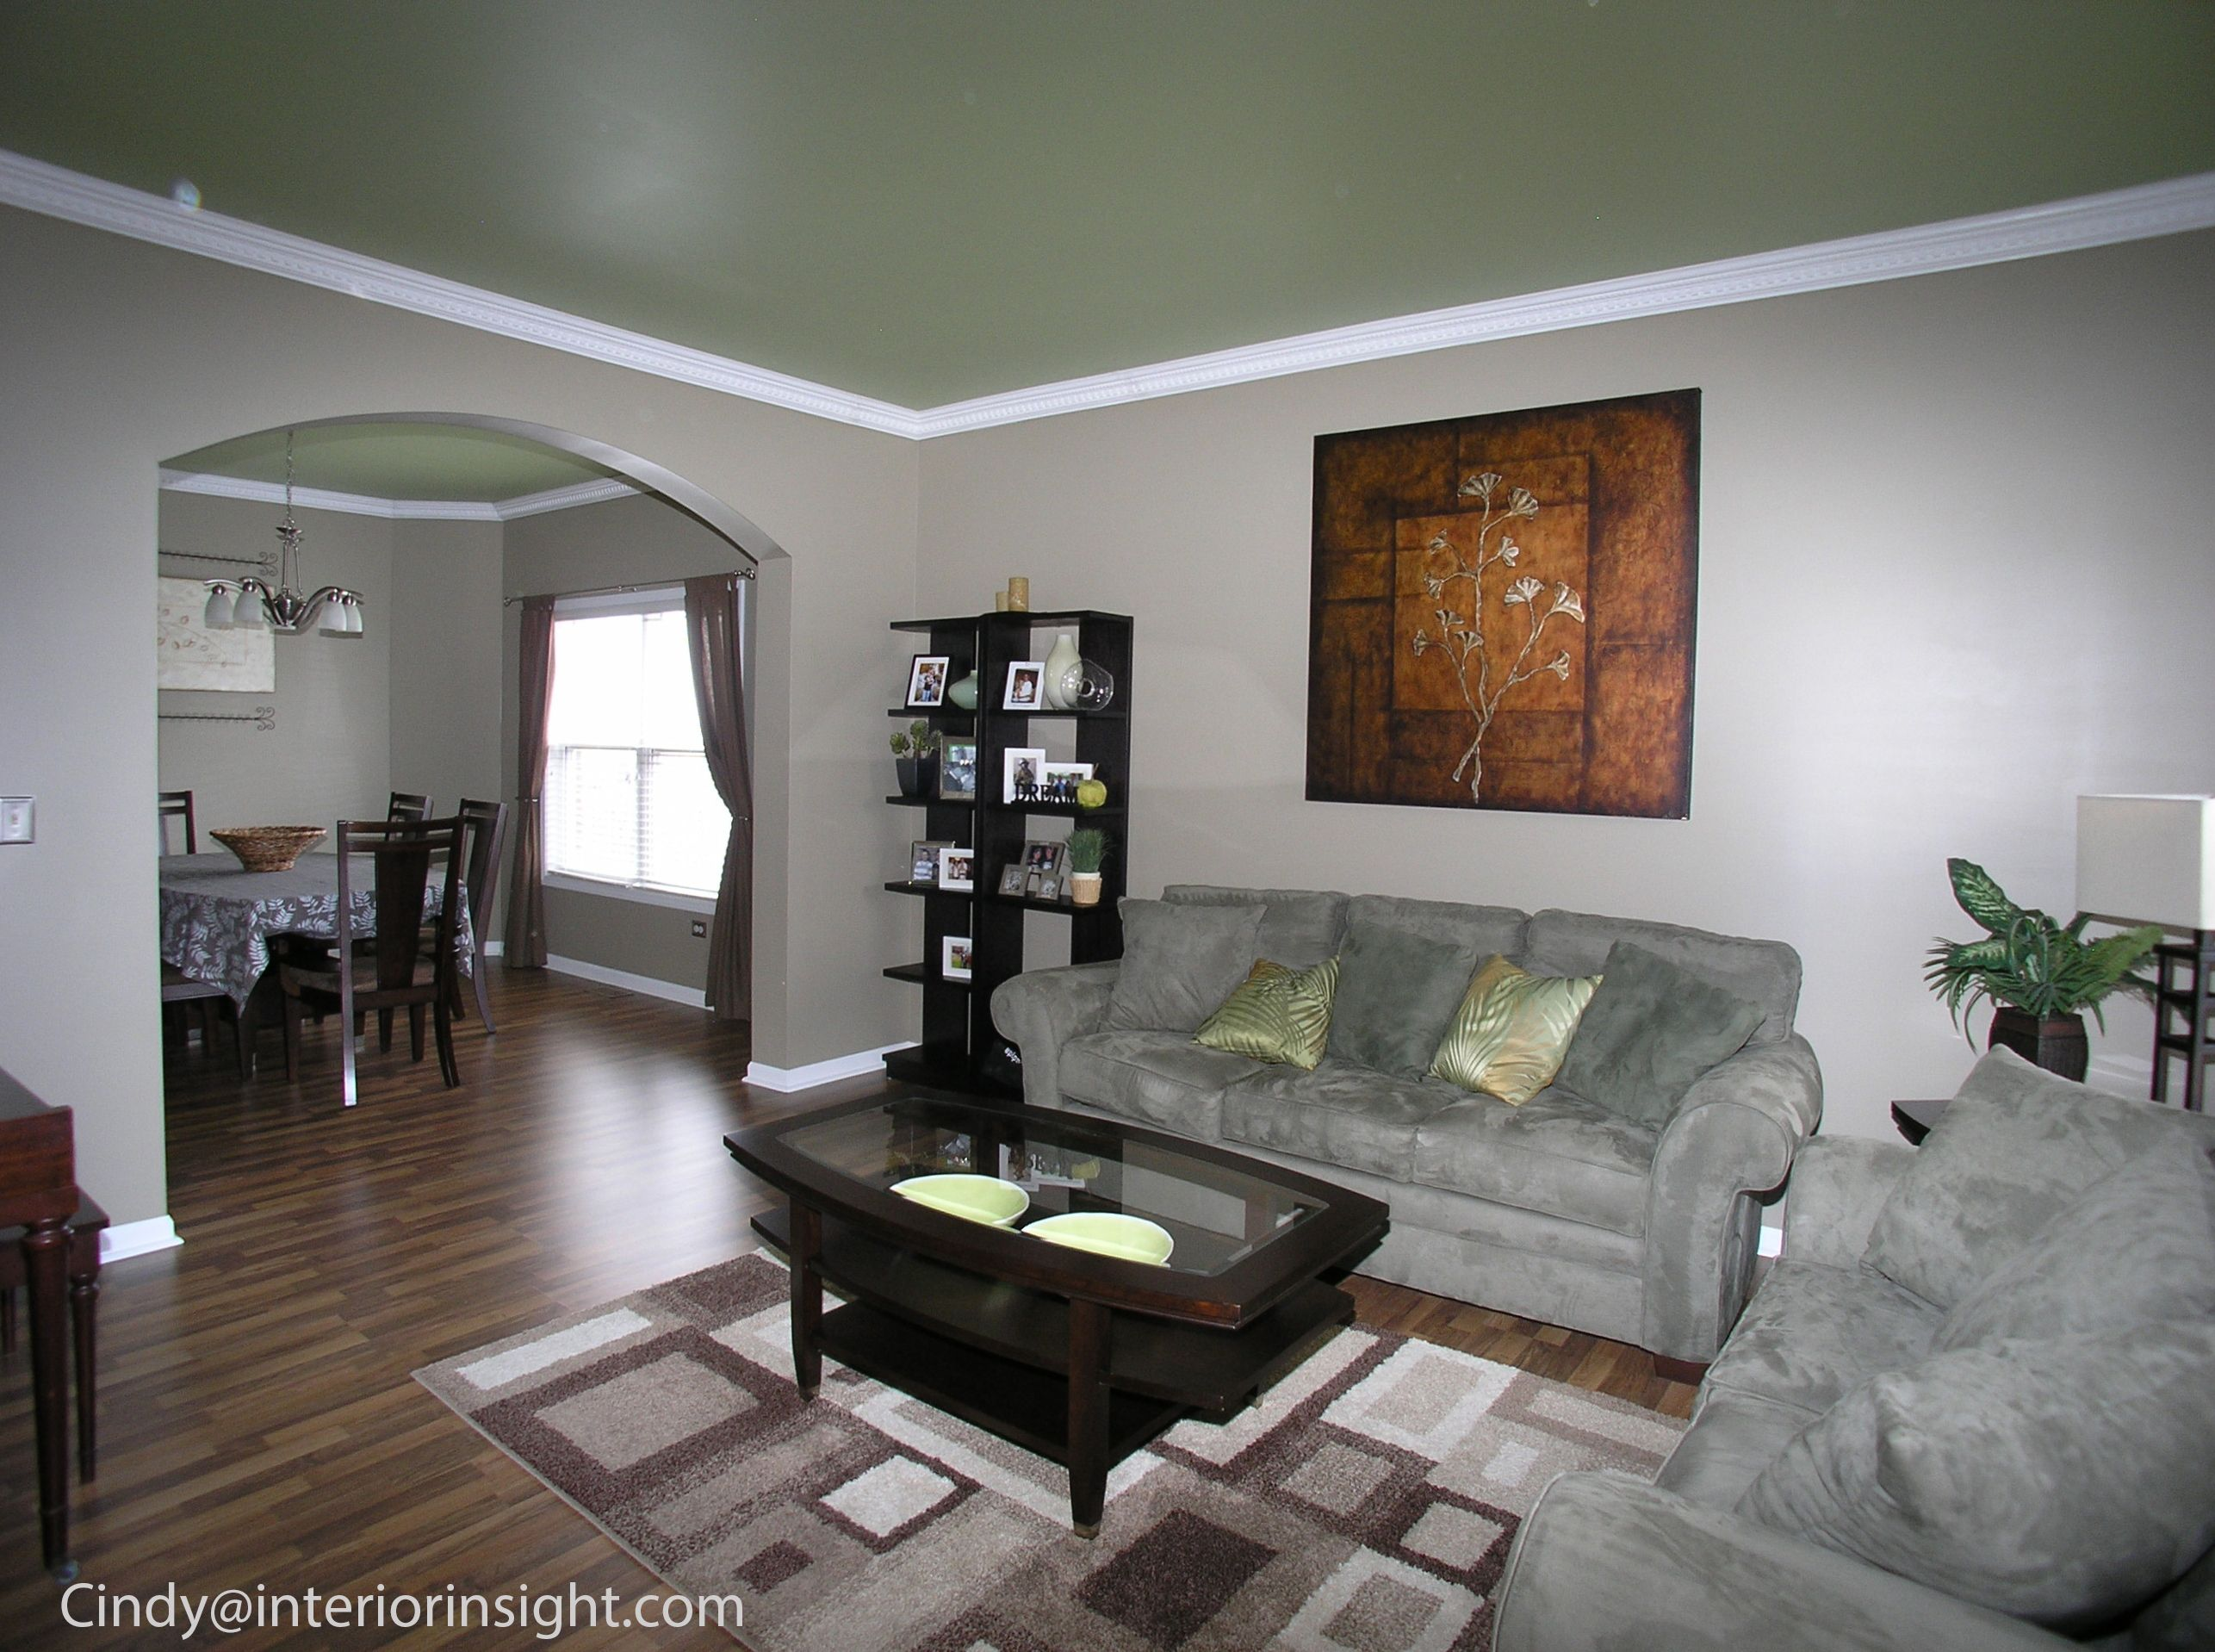 Bright Bold Green Ceilings Play Off The Light Grey Walls In